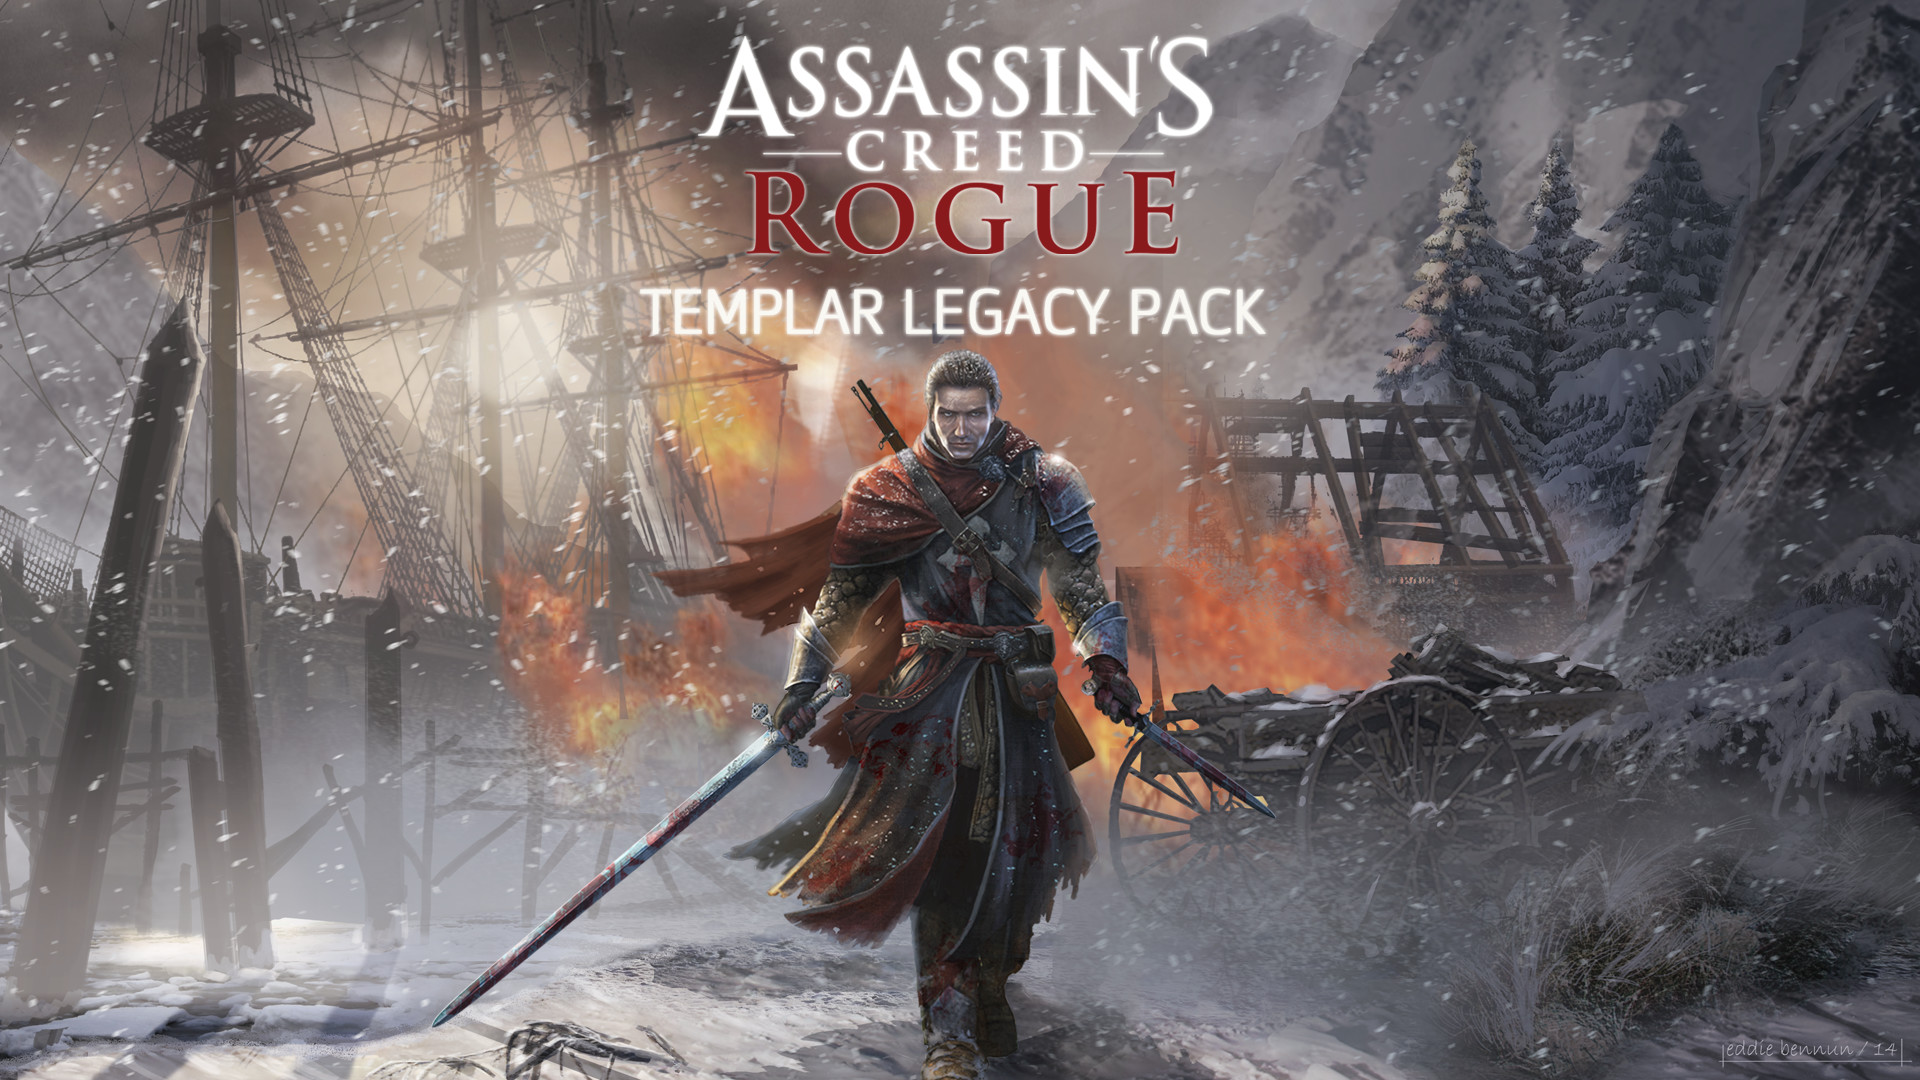 Assassin S Creed Rogue Templar Legacy Pack 2015 Promotional Art